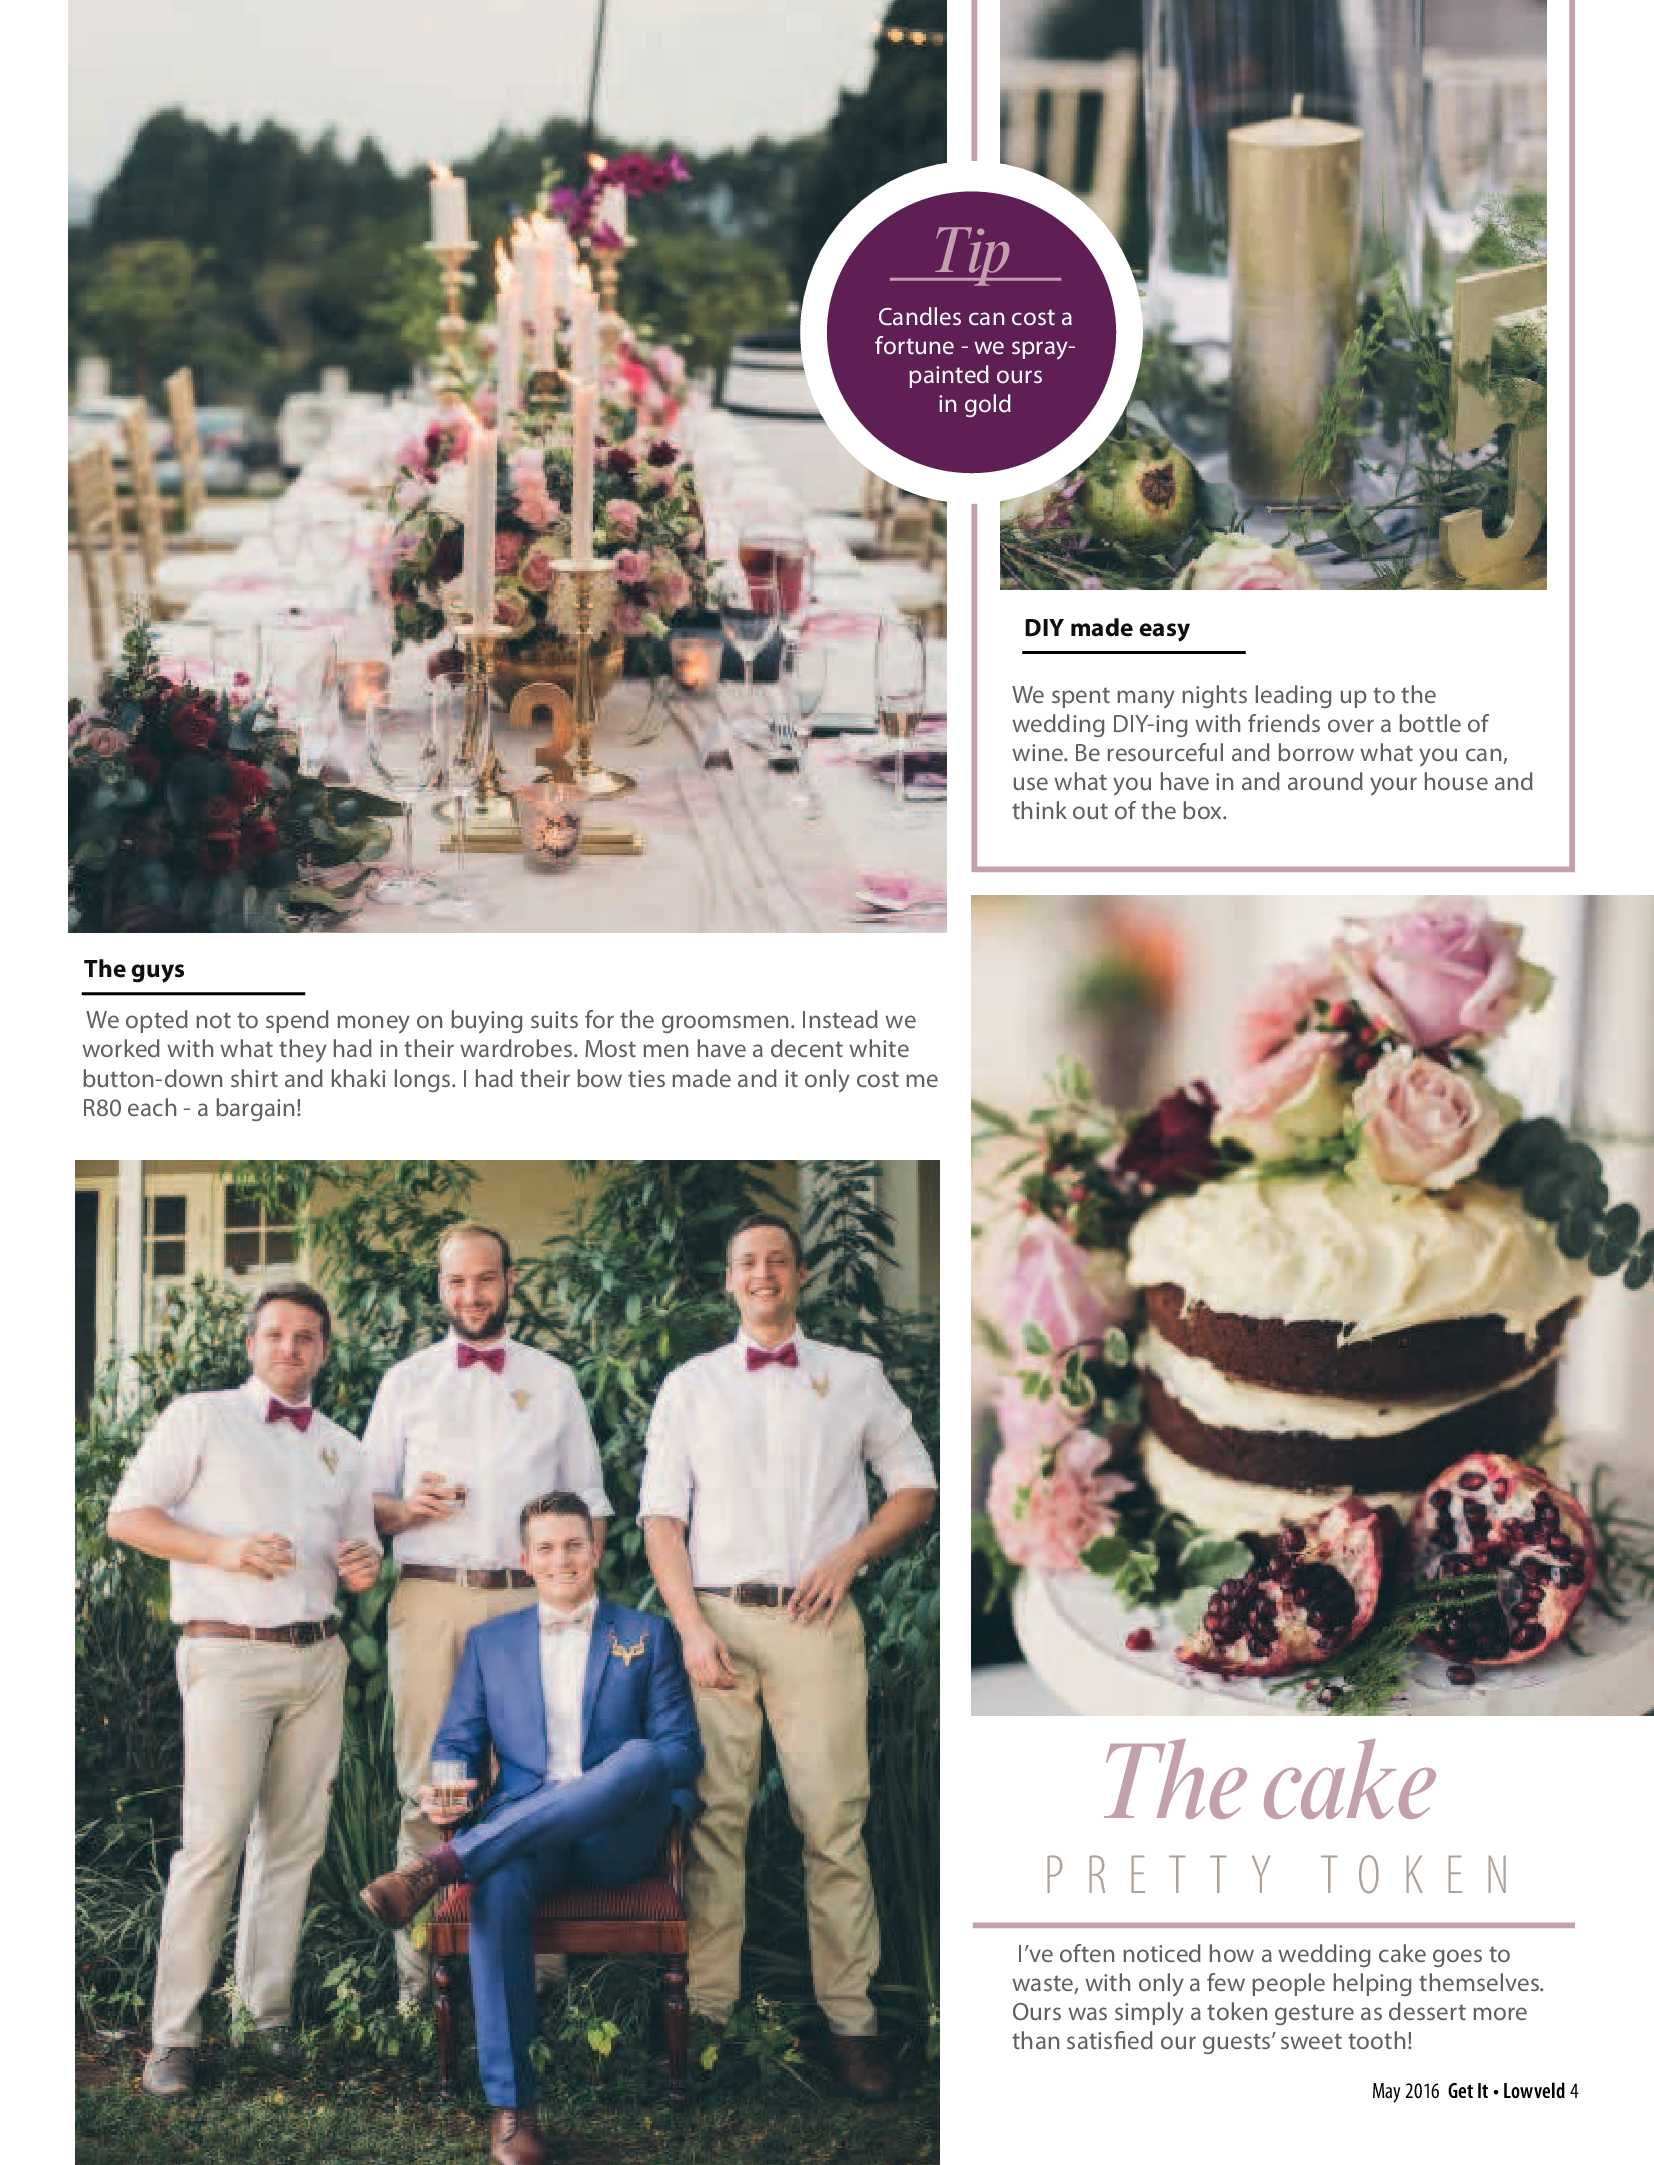 get-lowveld-bridal-supplement-2016-epapers-page-5